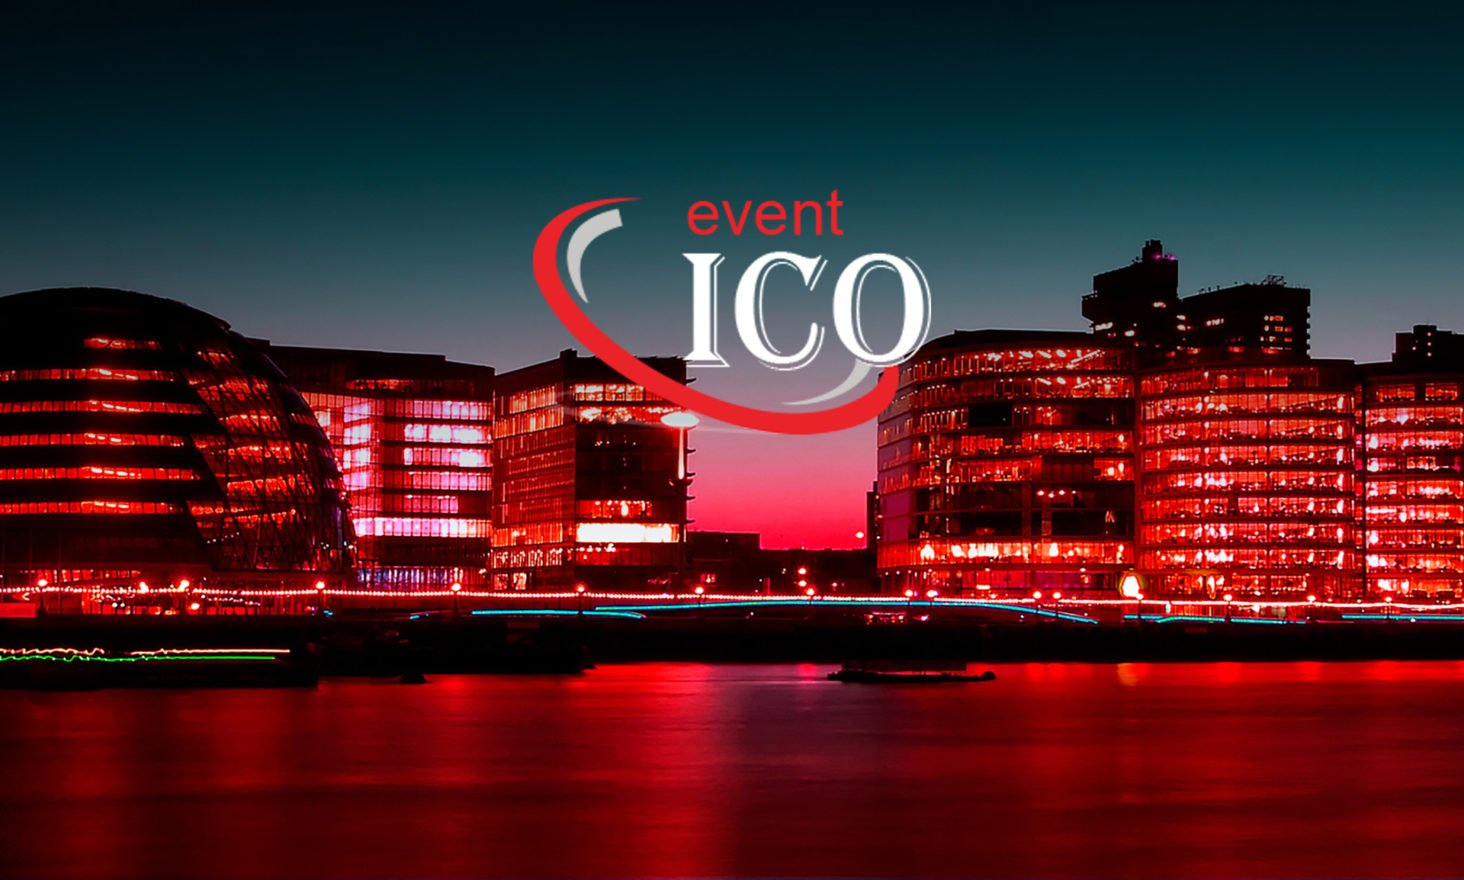 Capital Investment, Computer Games, Healthcare, Travelling - What Will be Showcased at ICO event London?